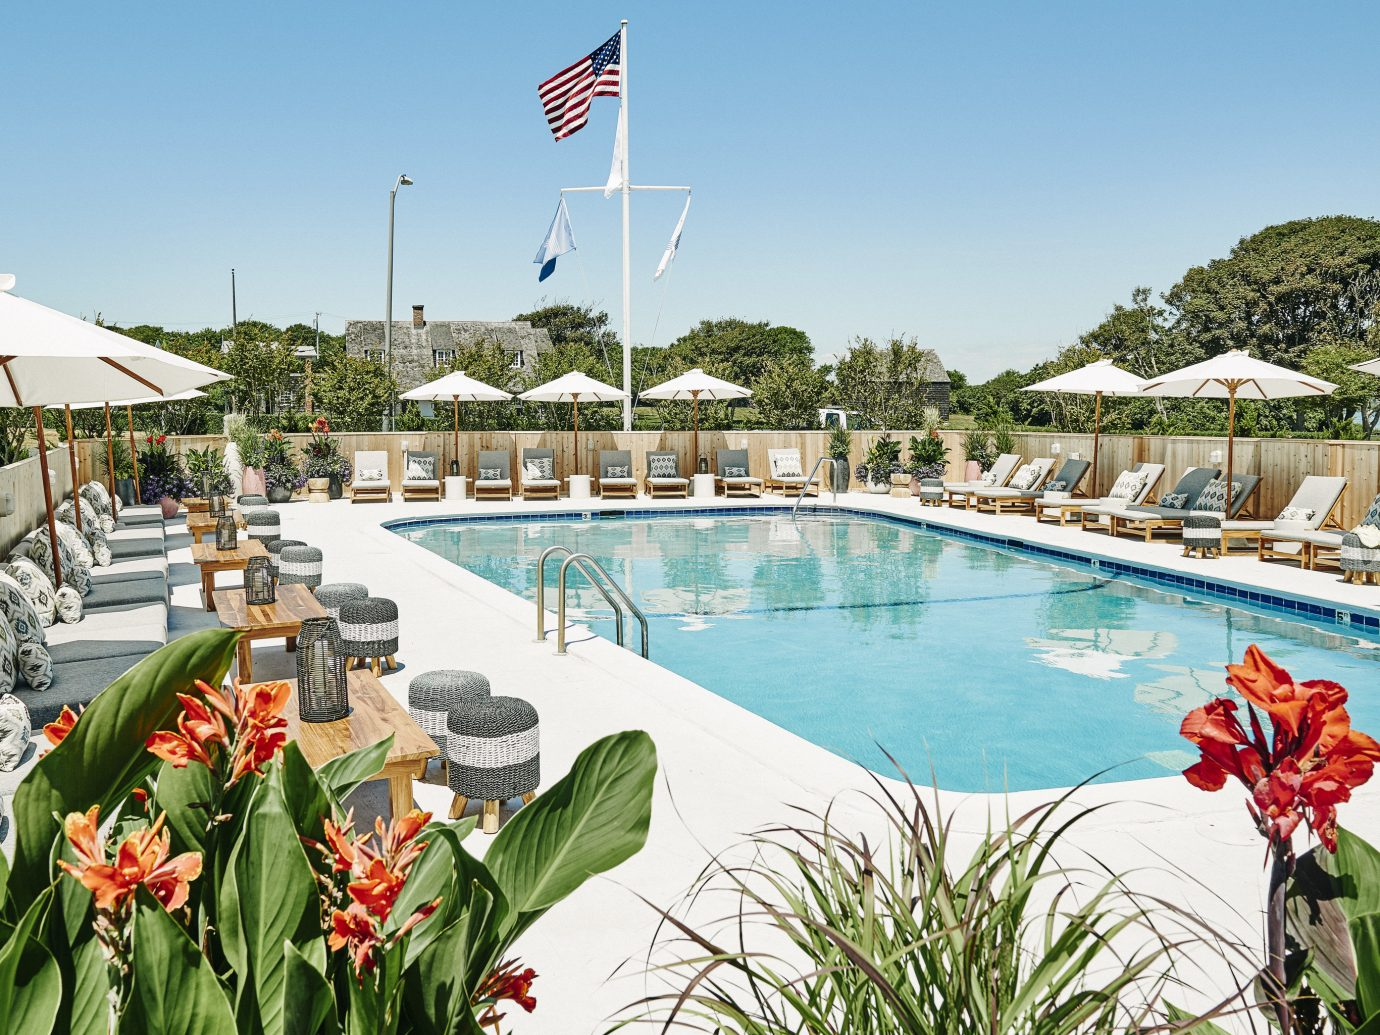 Hotels Style + Design Trip Ideas sky outdoor swimming pool leisure Resort flower plant tourism real estate vacation tree recreation resort town estate water landscape amenity day